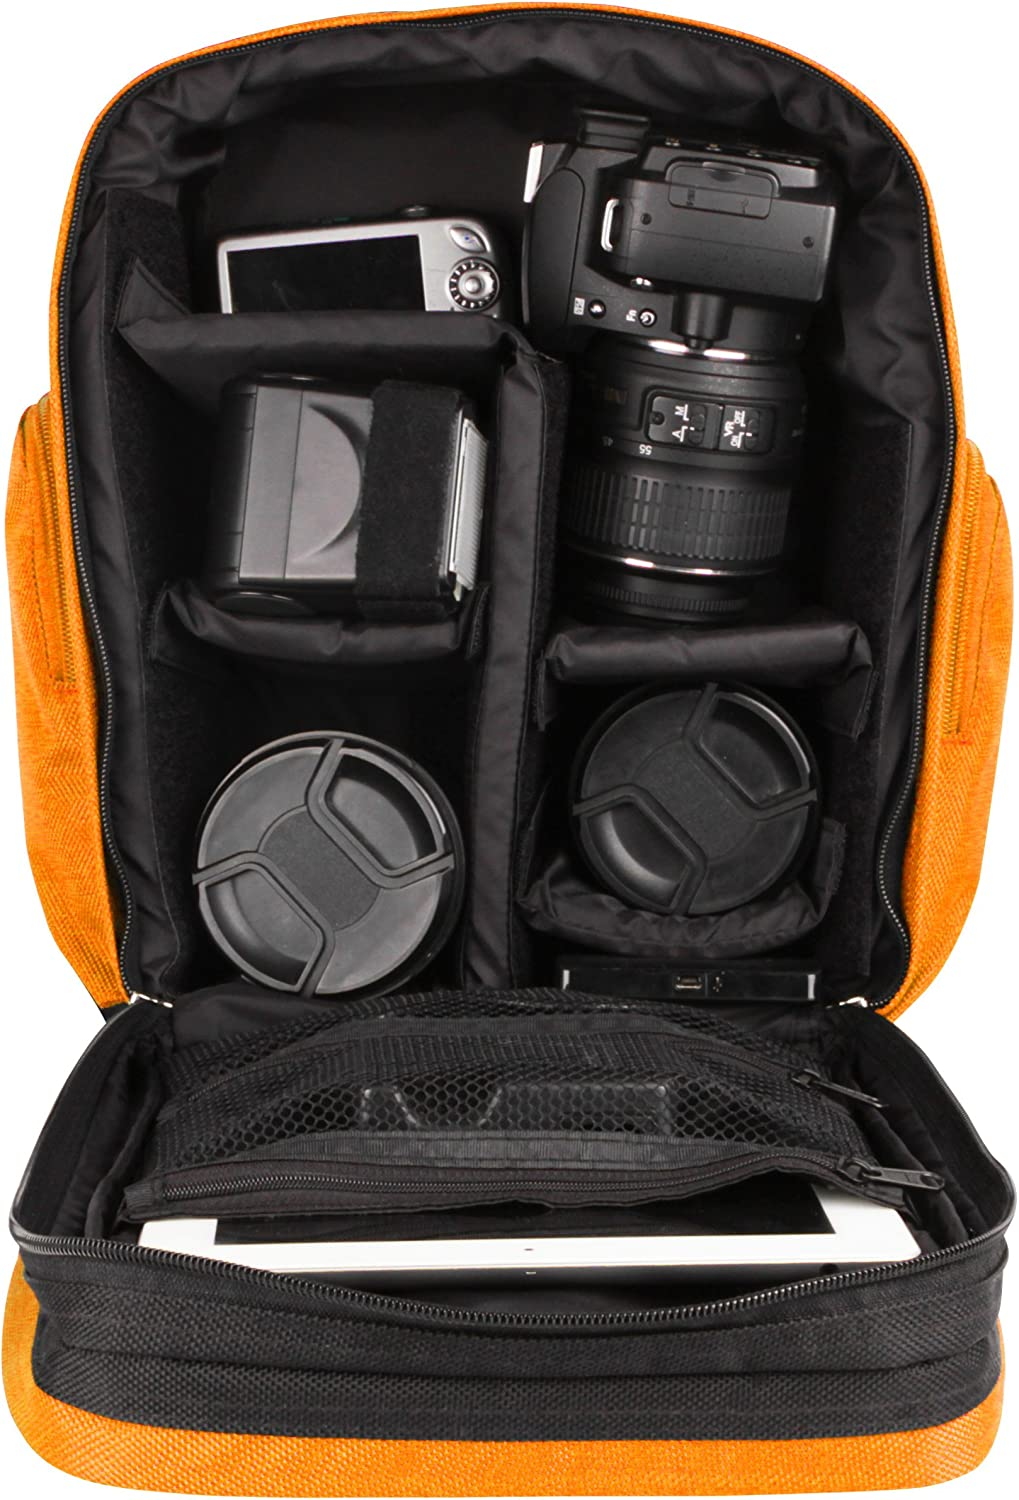 645D Digital SLR Cameras and Mini Tripod and Screen Protector Vangoddy Sparta Travel Backpack for Pentax 645Z Black and Orange